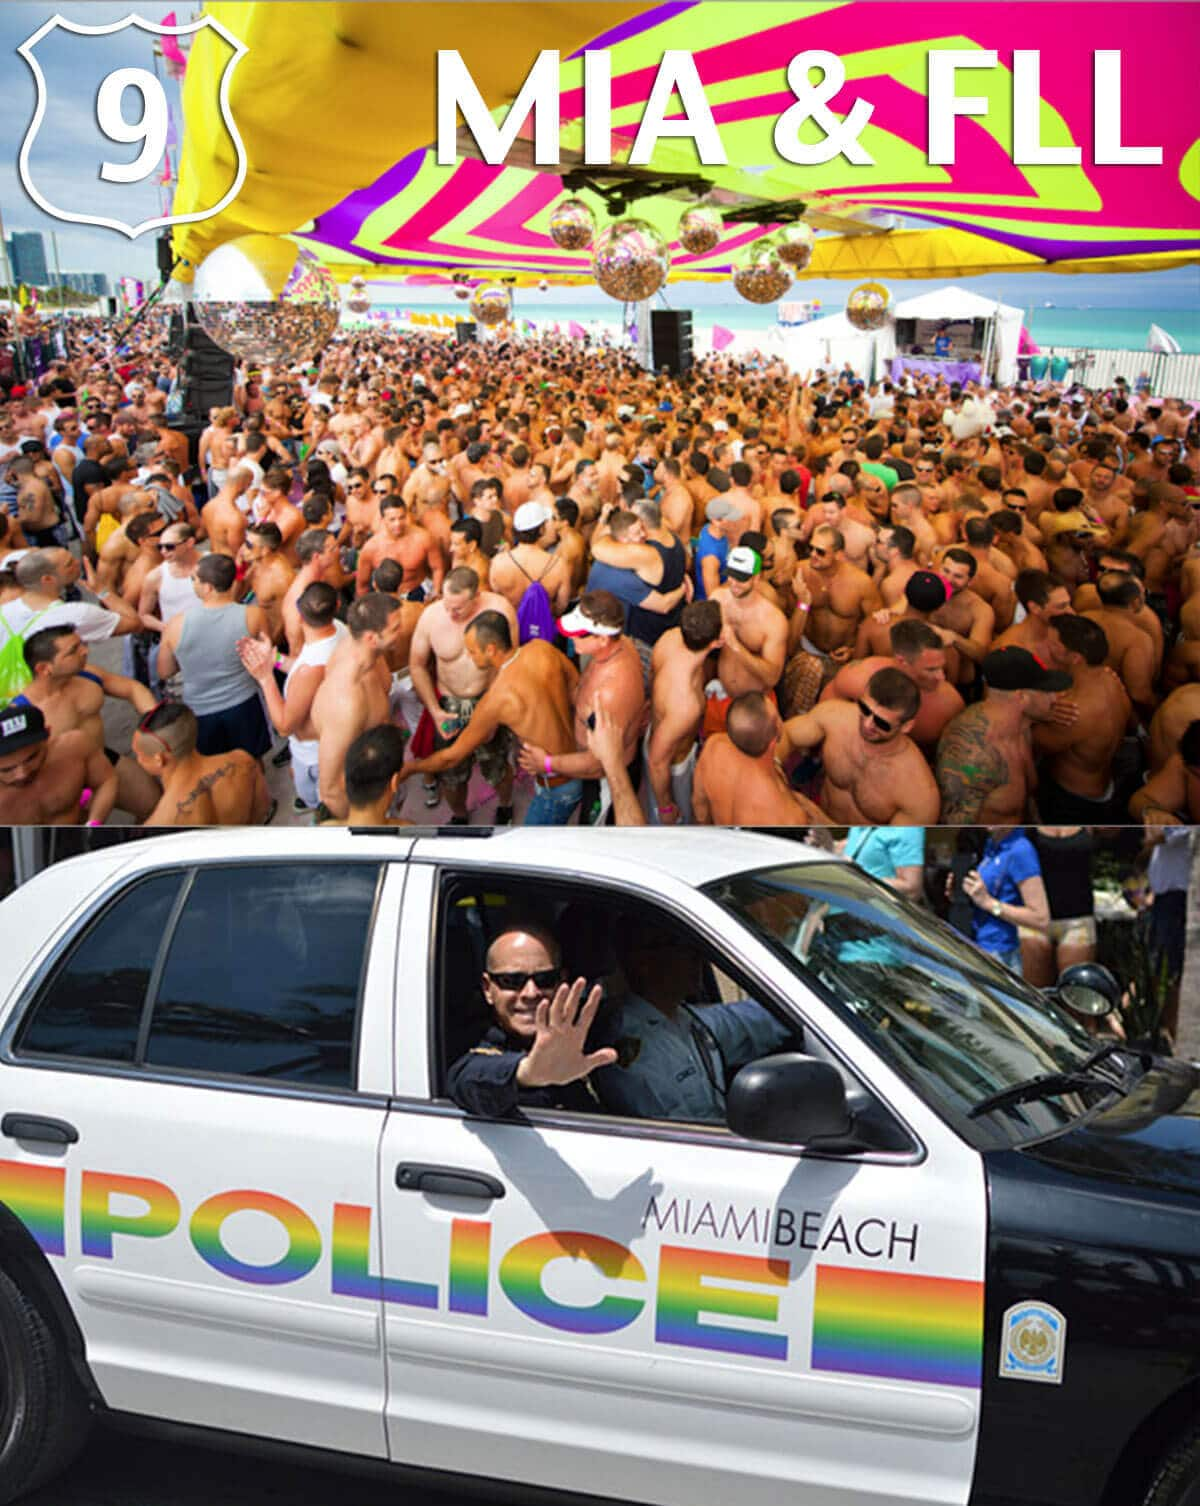 Top 10 Gay Destinations 2015 Miami Fort Lauderdale